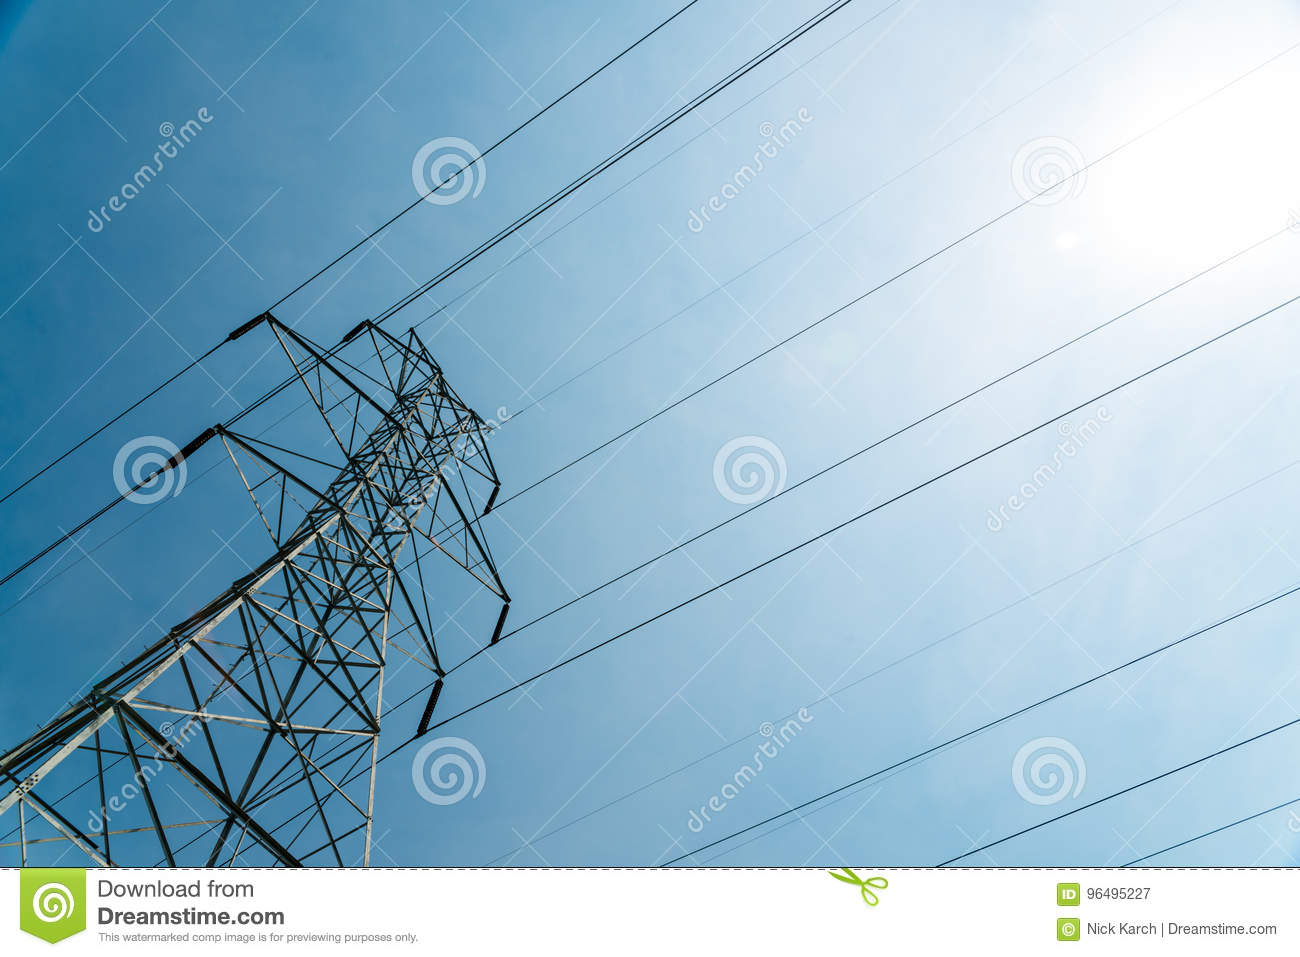 hight resolution of gigantic high voltage electical tower phone tower at angle on sunny day